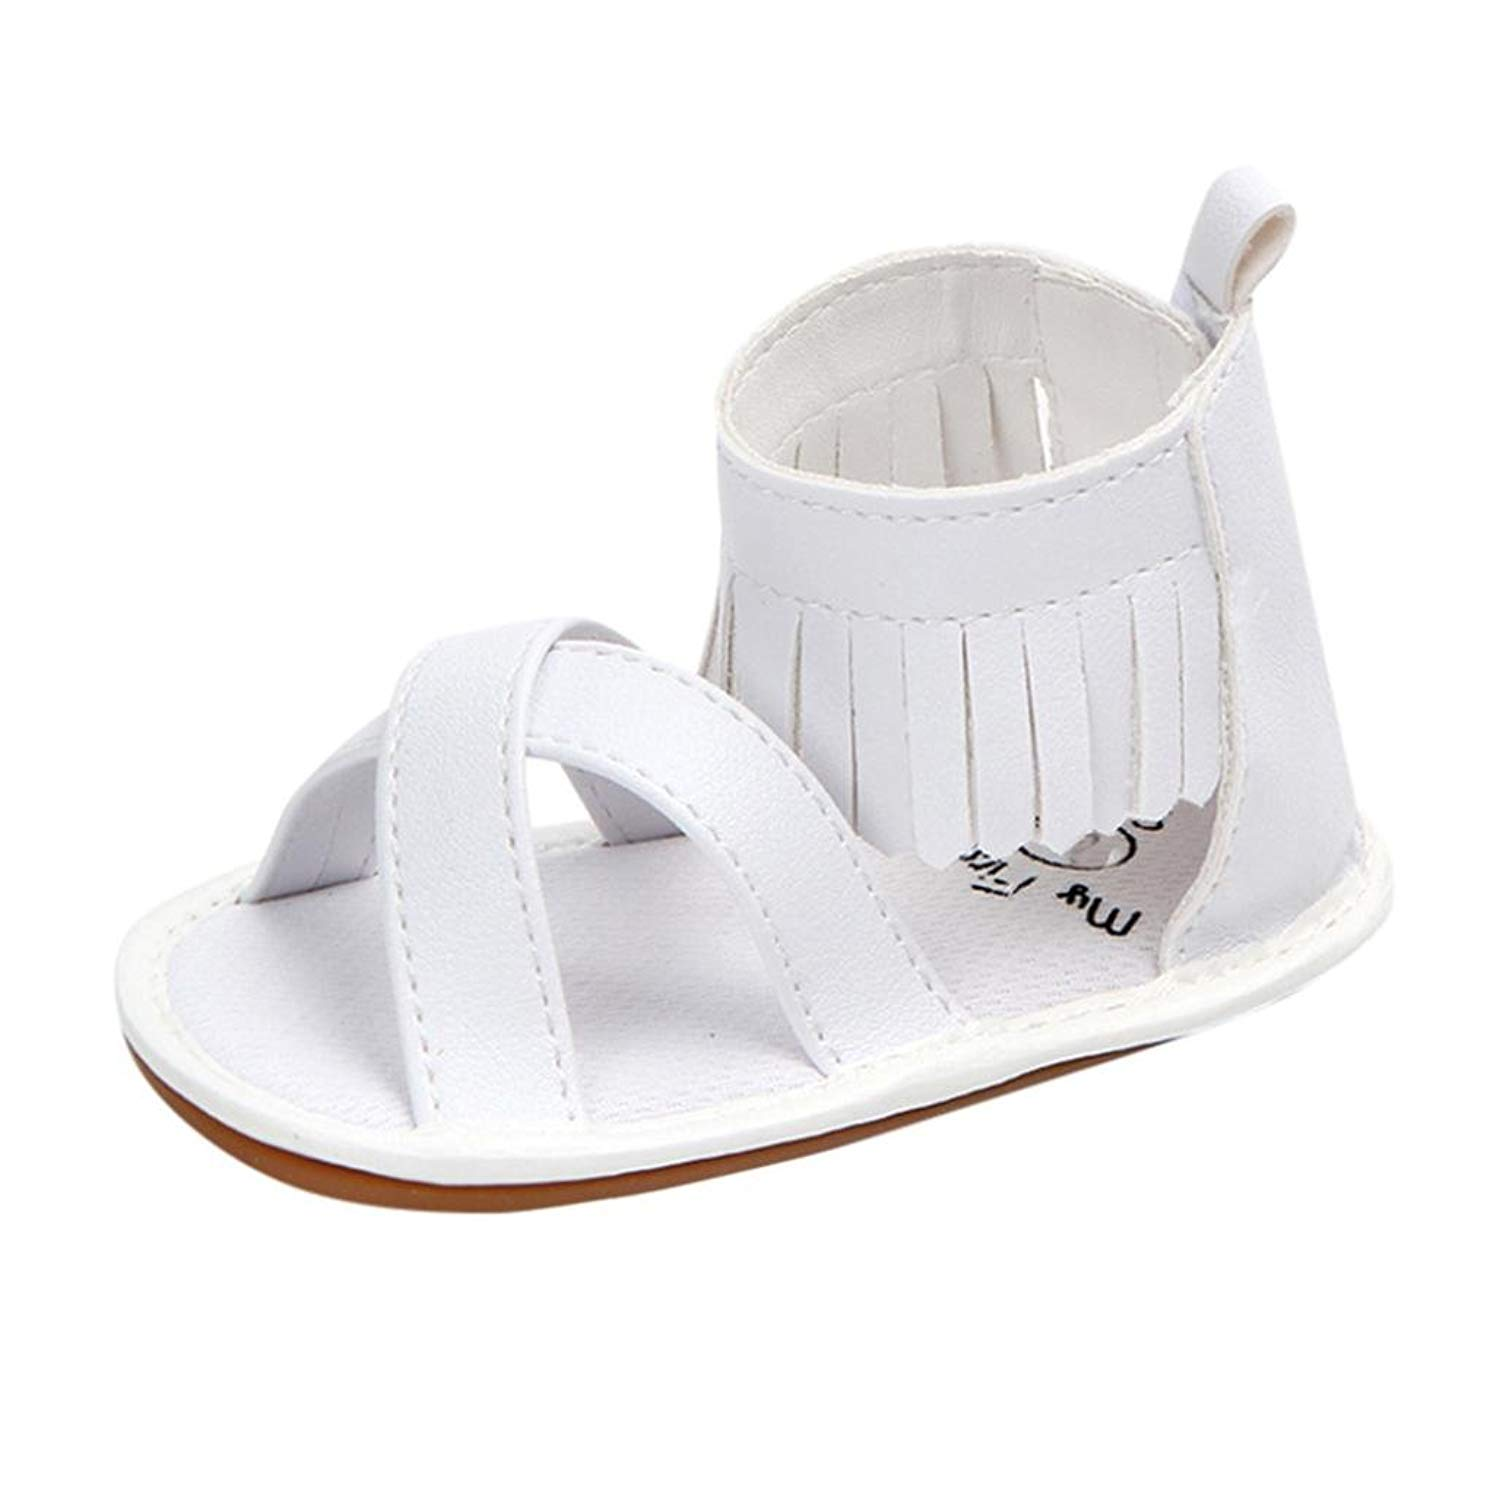 264667588ee7 Get Quotations · WOCACHI Baby Girls Shoes Toddler Girls Shoes Soft Tassel  Crib Shoes Infant